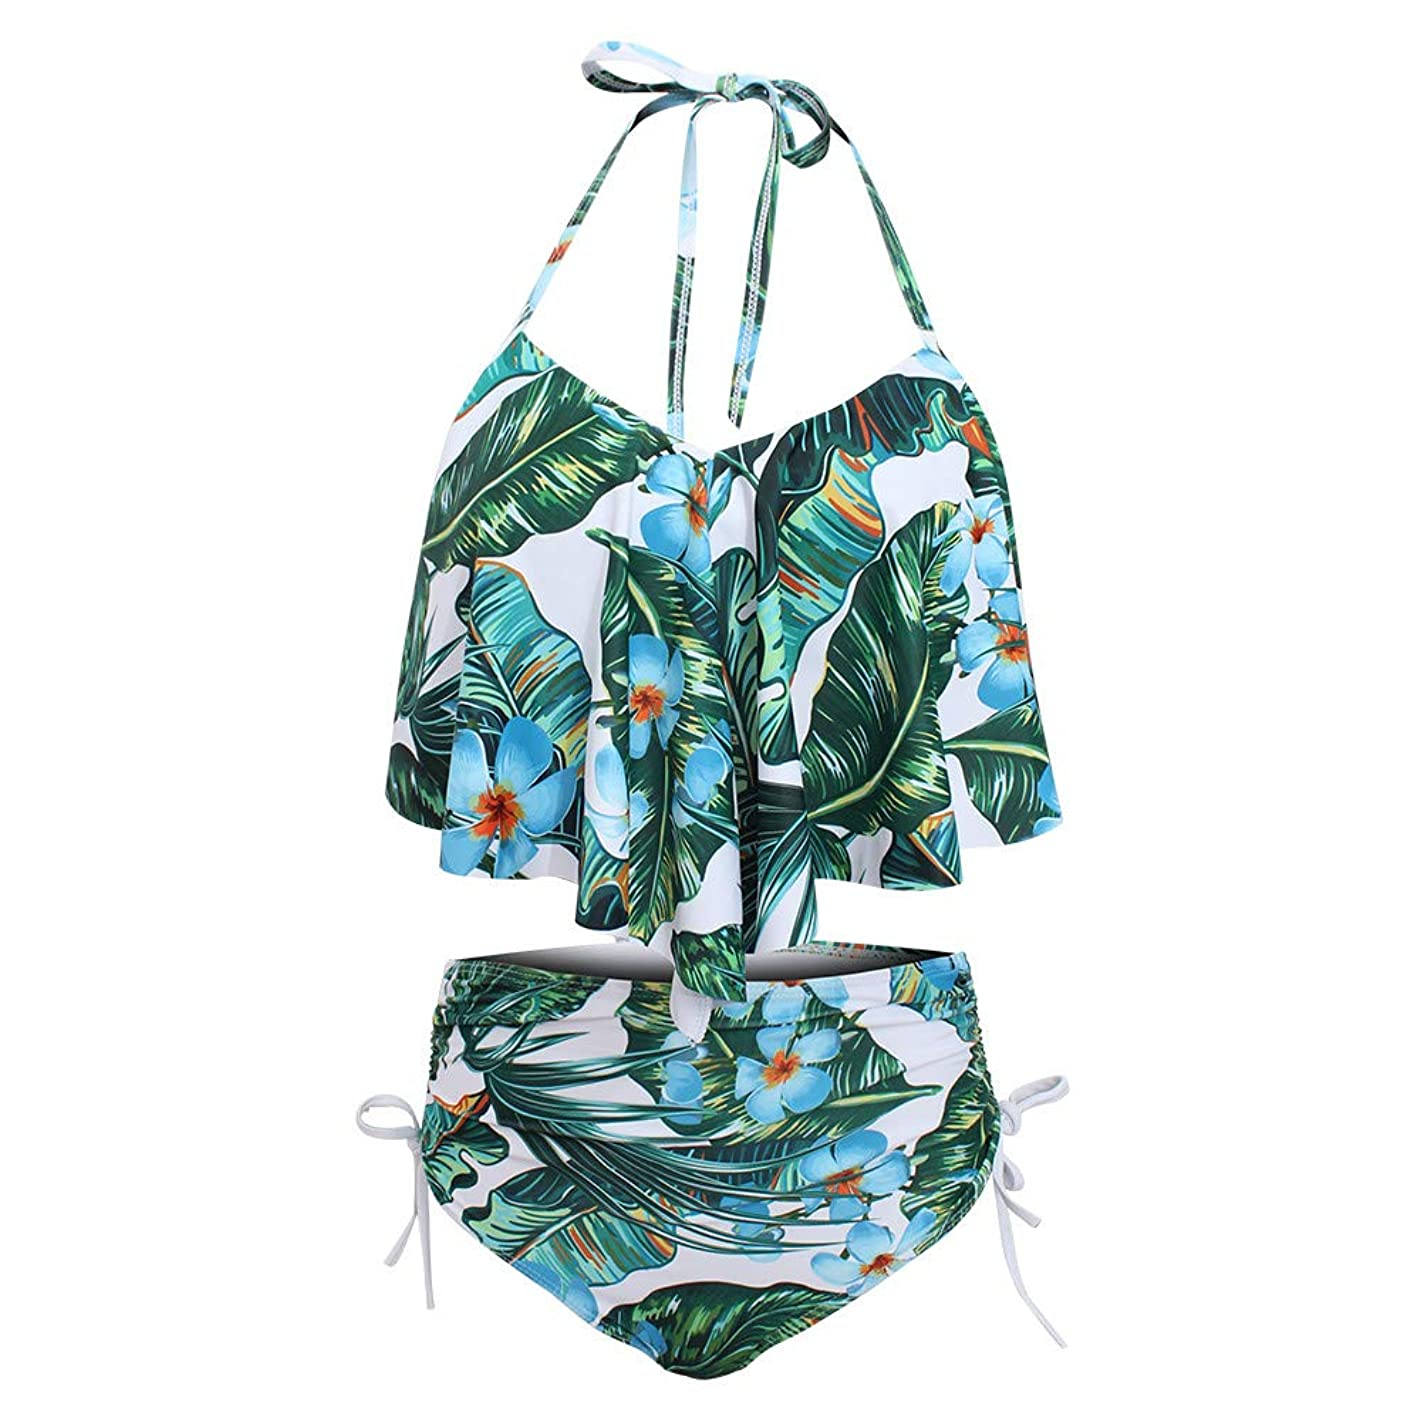 Benficial Women's High Neck Two Piece Bathing Suits Top Ruffled High Waist Swimsuit Tankini Bikini Sets